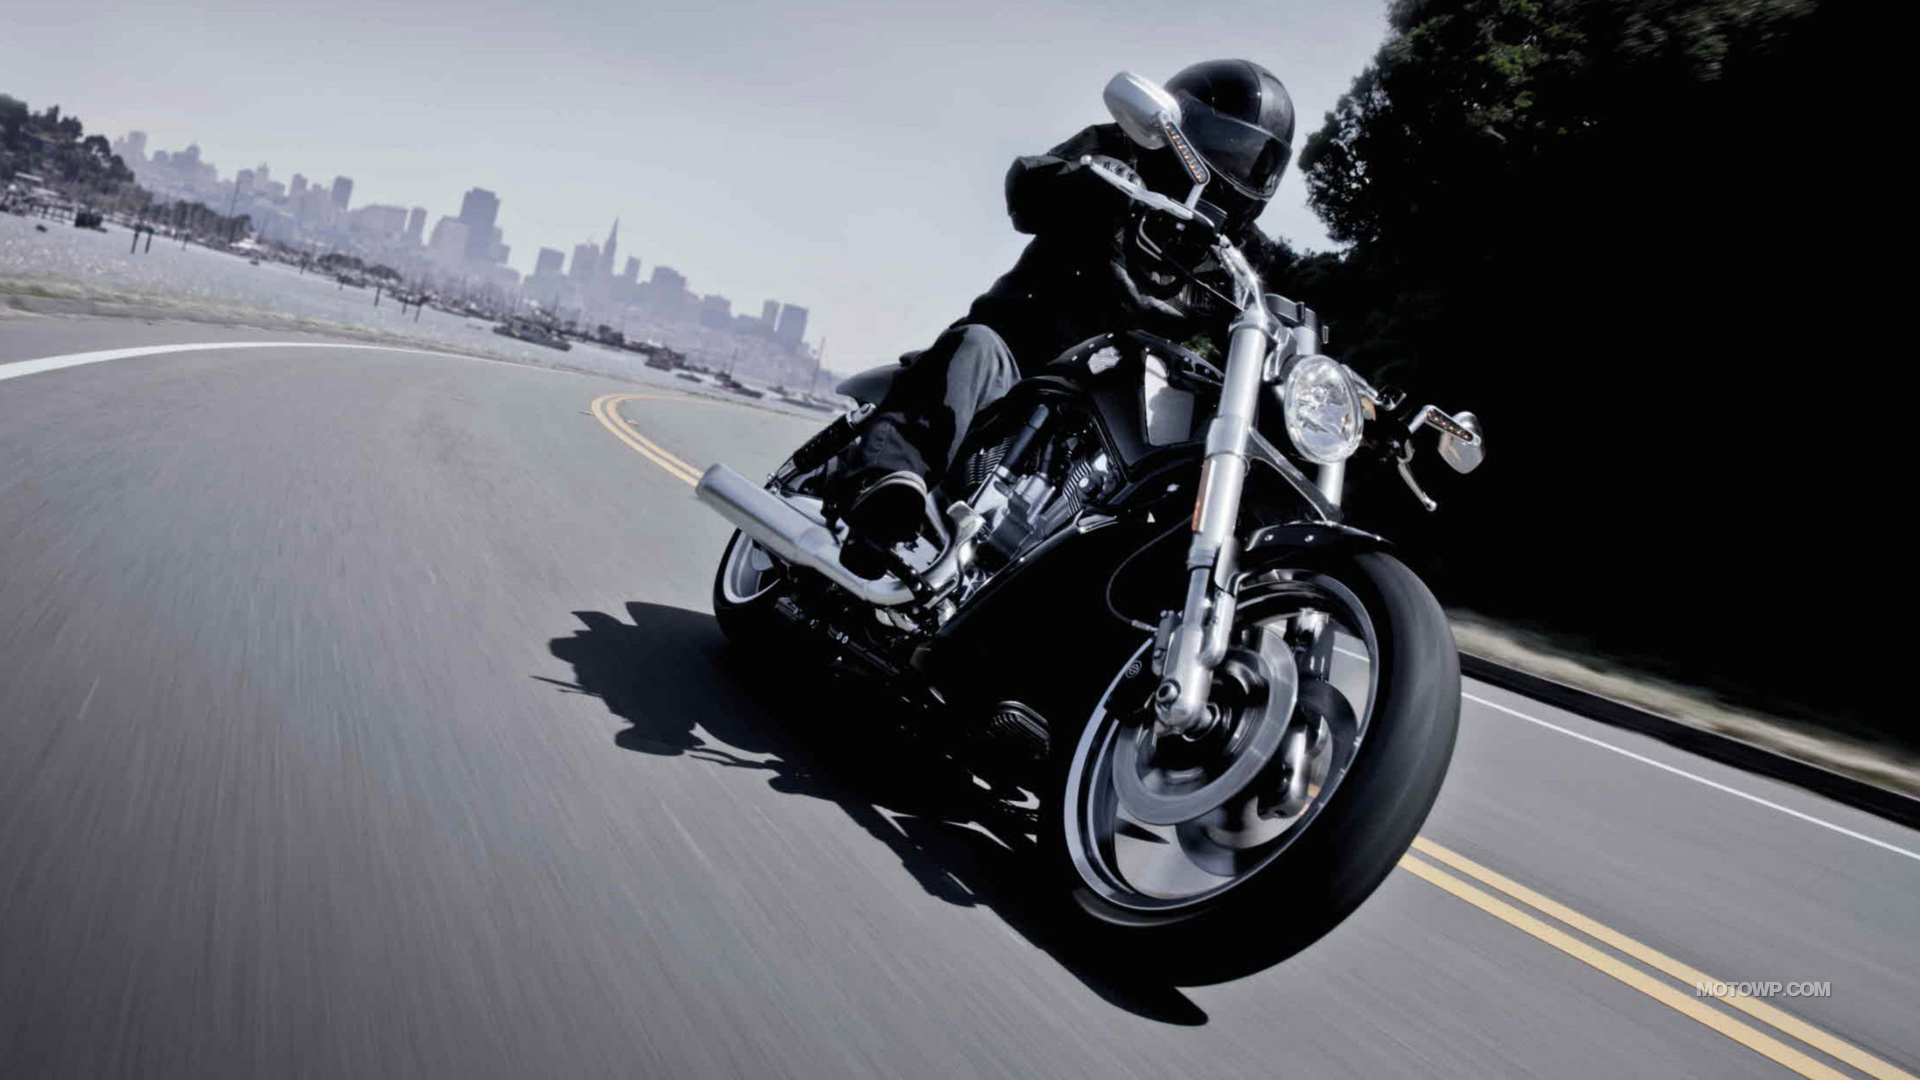 excellent bike race harley davidson hd picture free download image